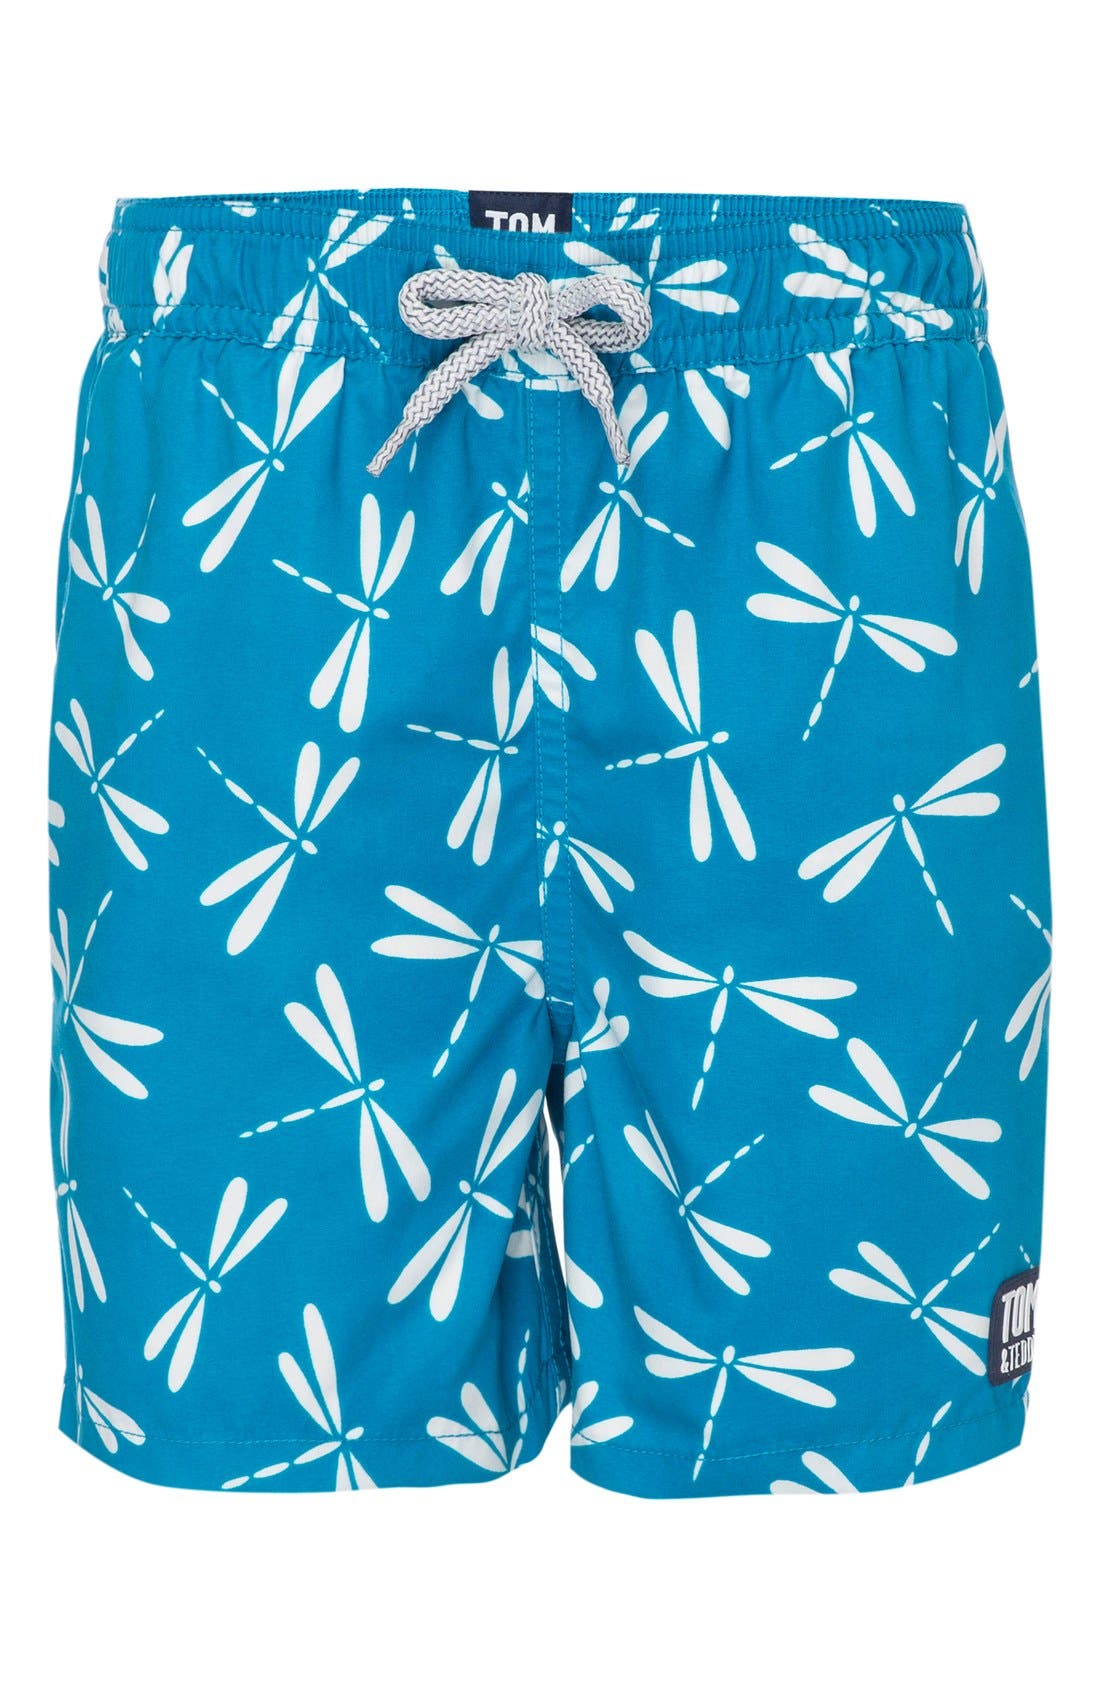 TOM & TEDDY Dragonfly Swim Trunks